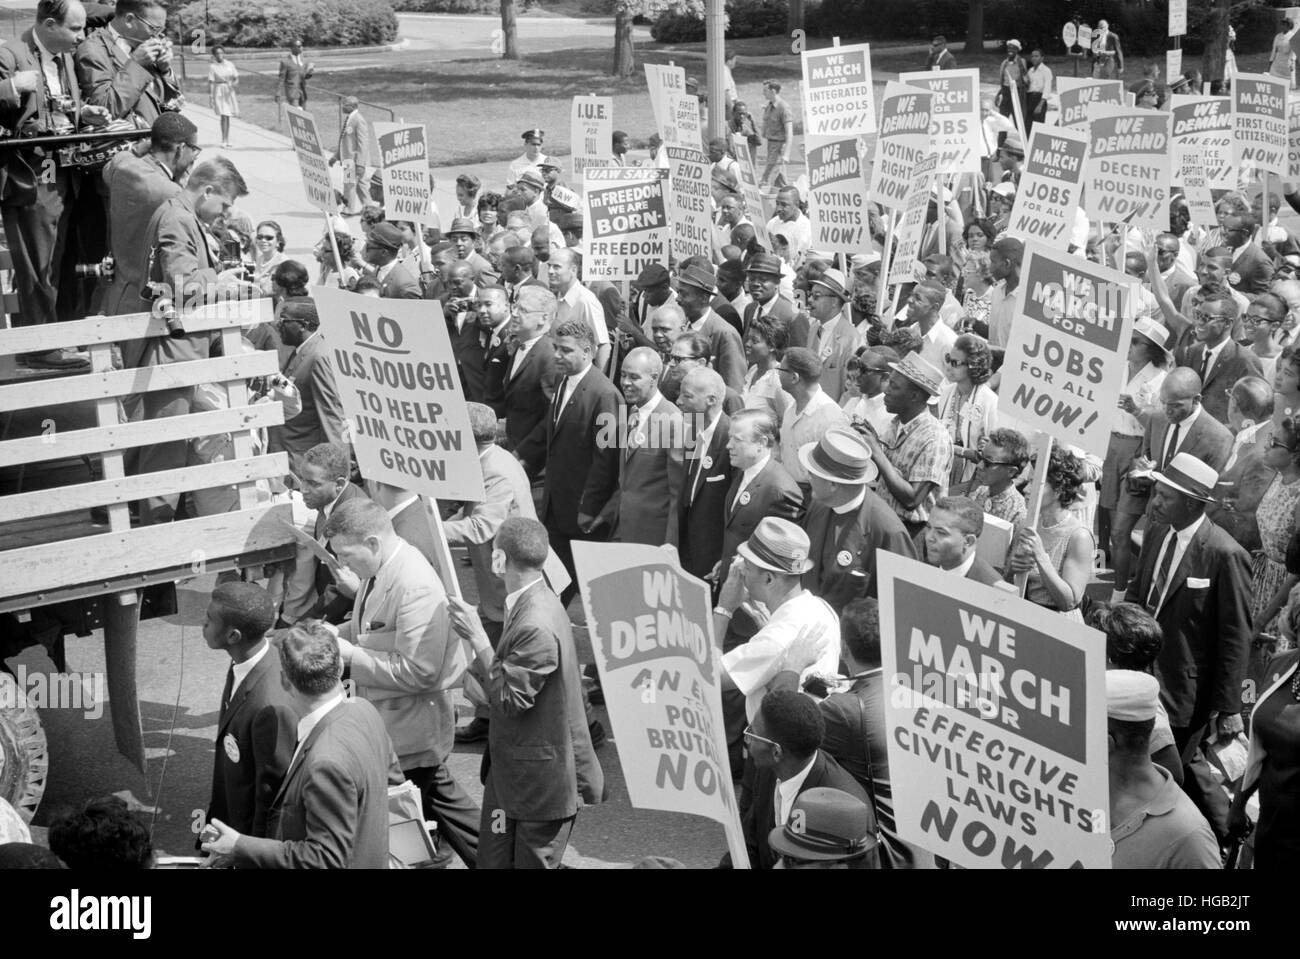 Civil rights leaders surrounded by crowds carrying signs, Washington D.C. - Stock Image